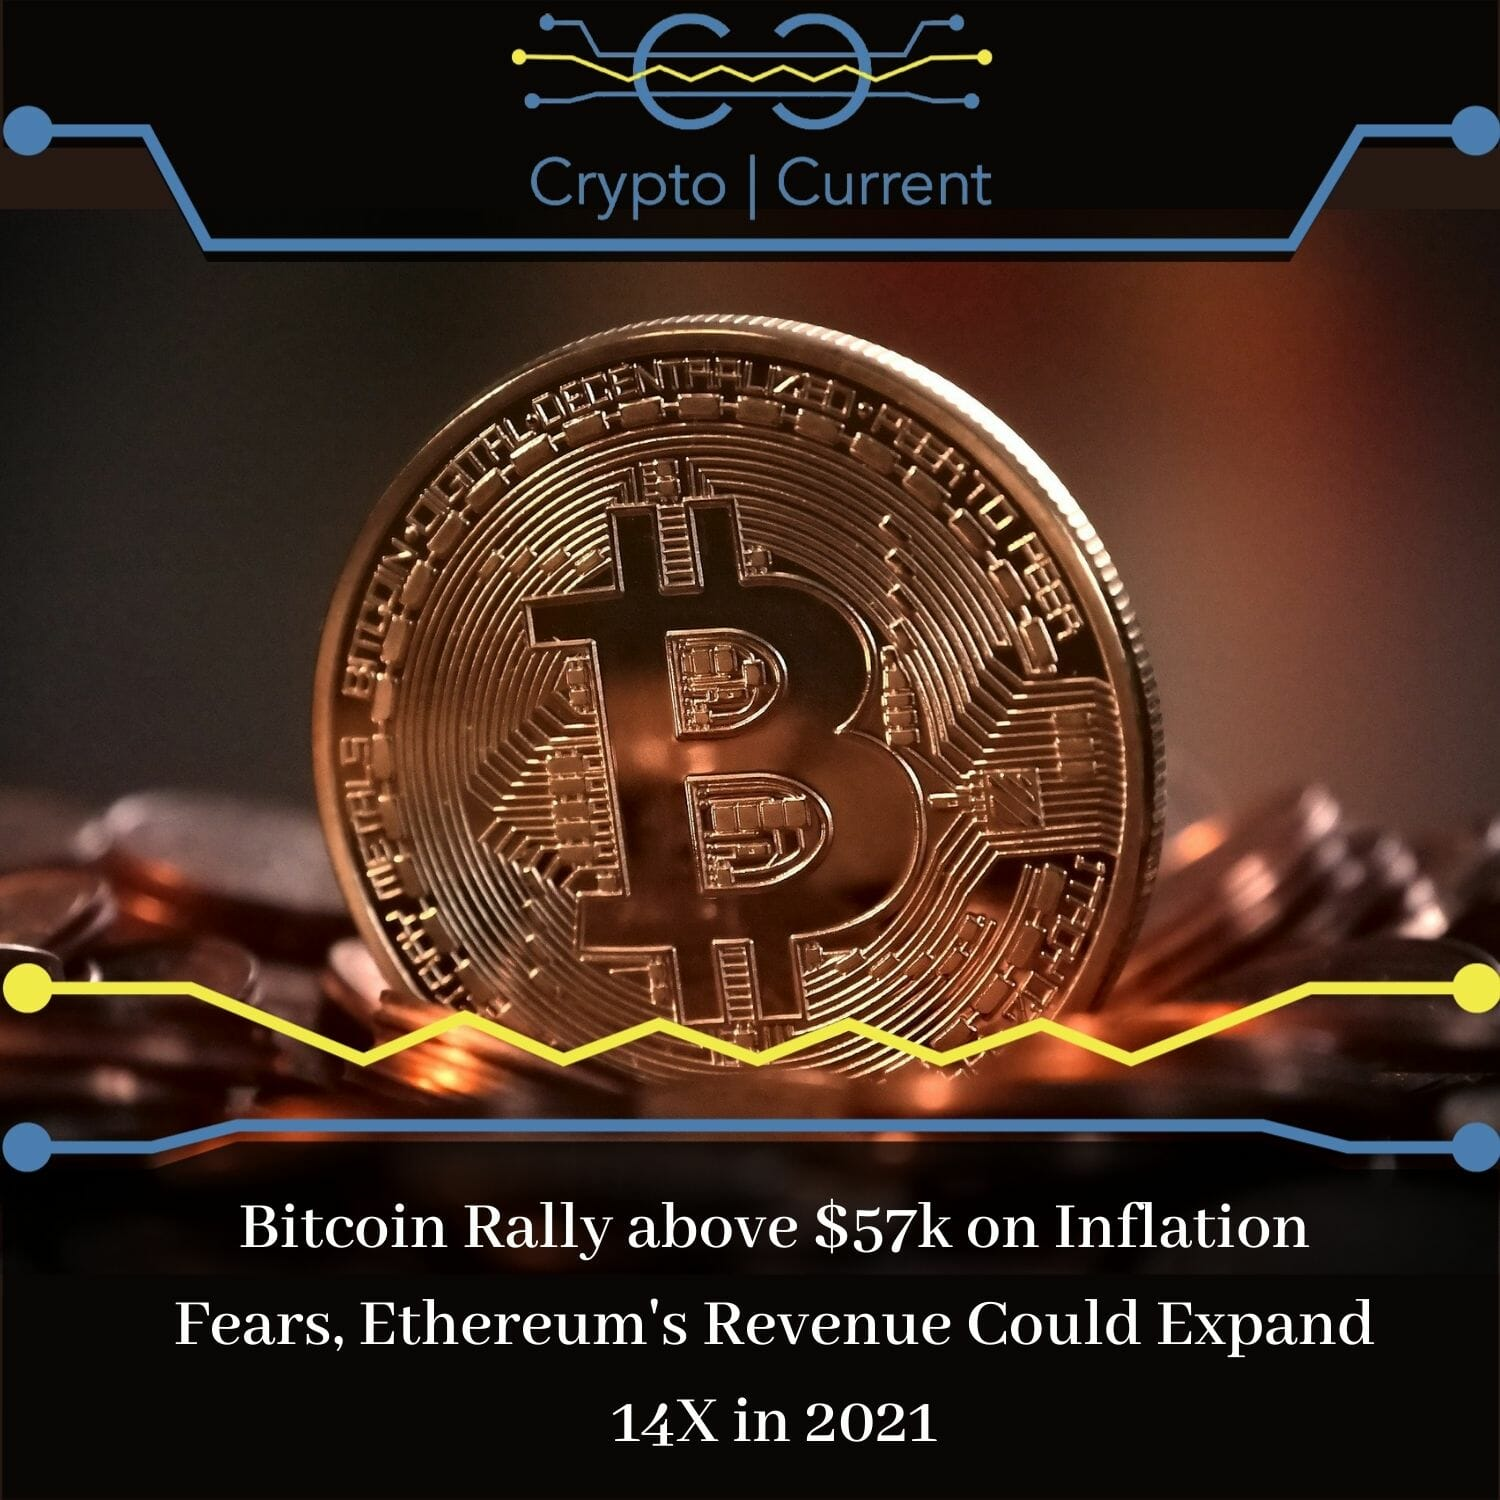 _Bitcoin Rally above $57k on Inflation Fears, Ethereum's Revenue Could Expand 14X in 2021 _